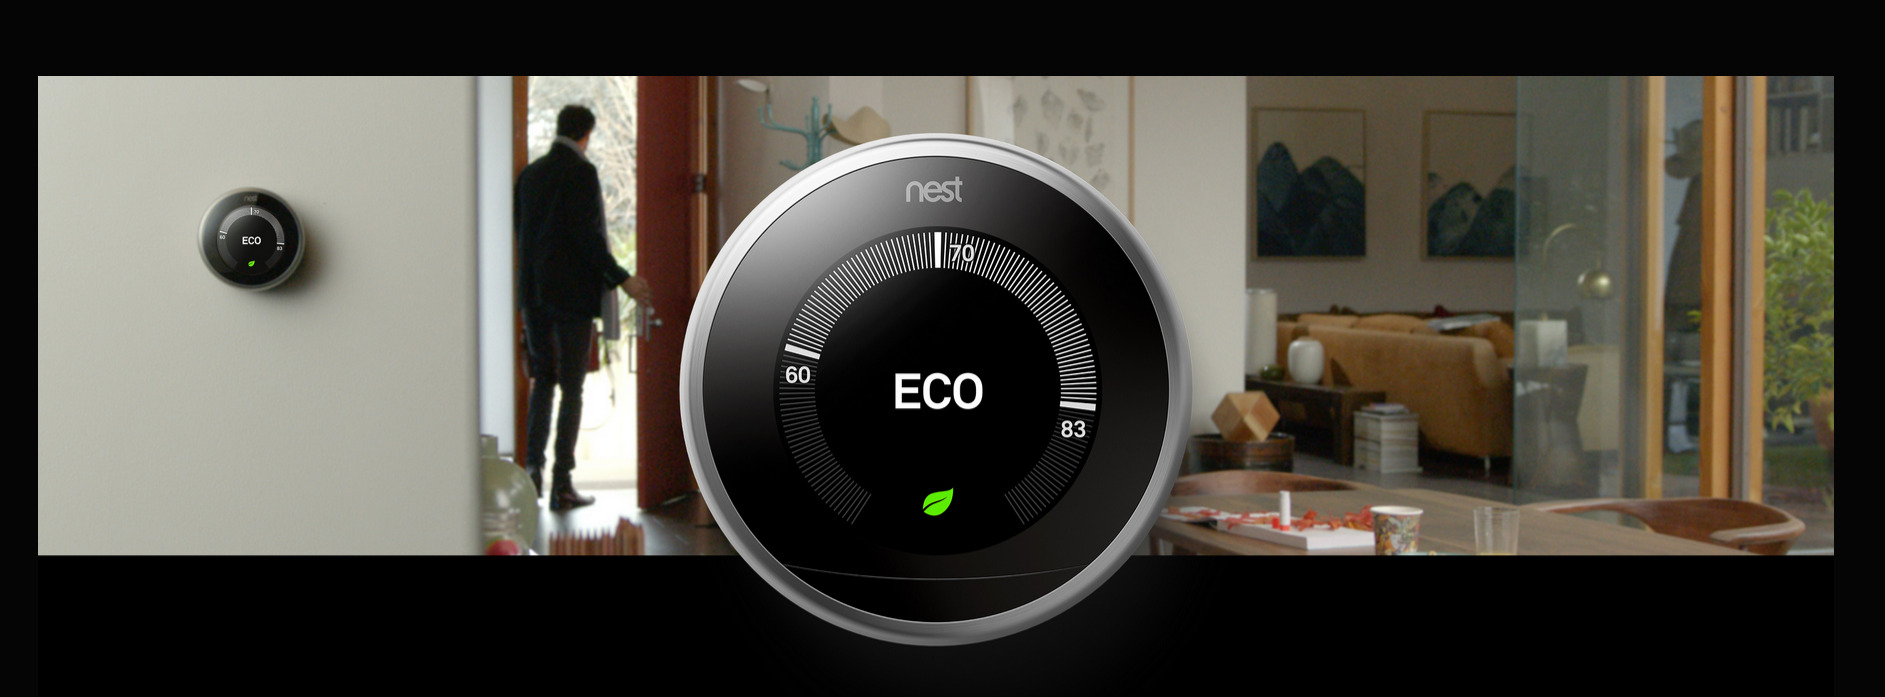 Nest Thermostat - Easy to use